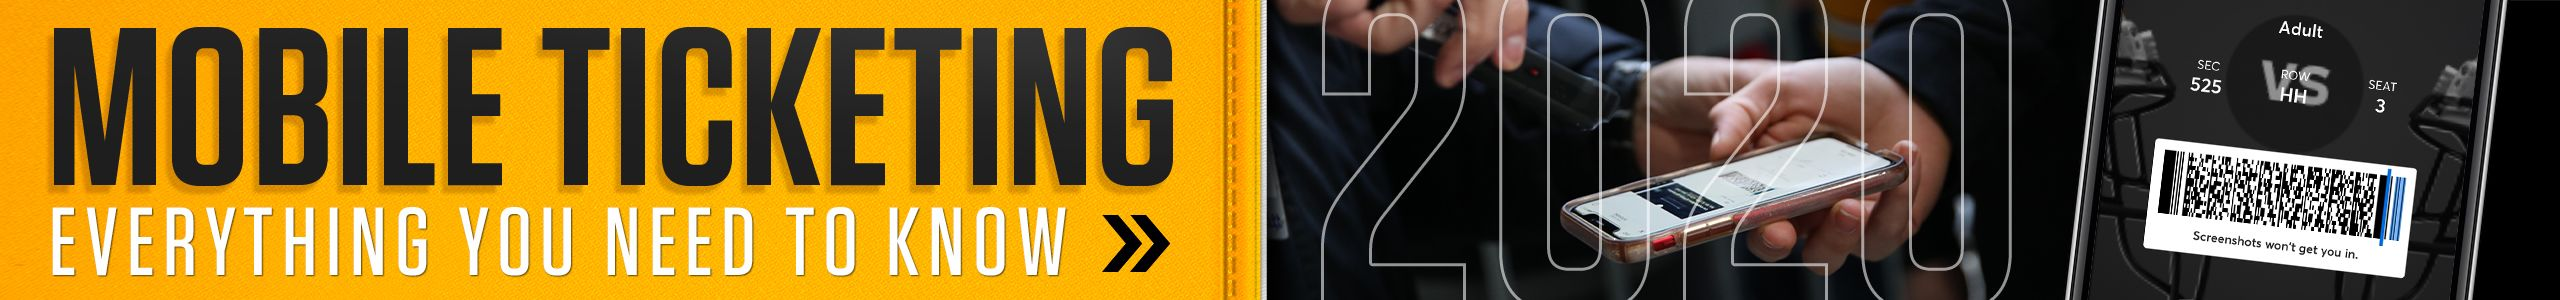 Steelers_STH_Page_Header